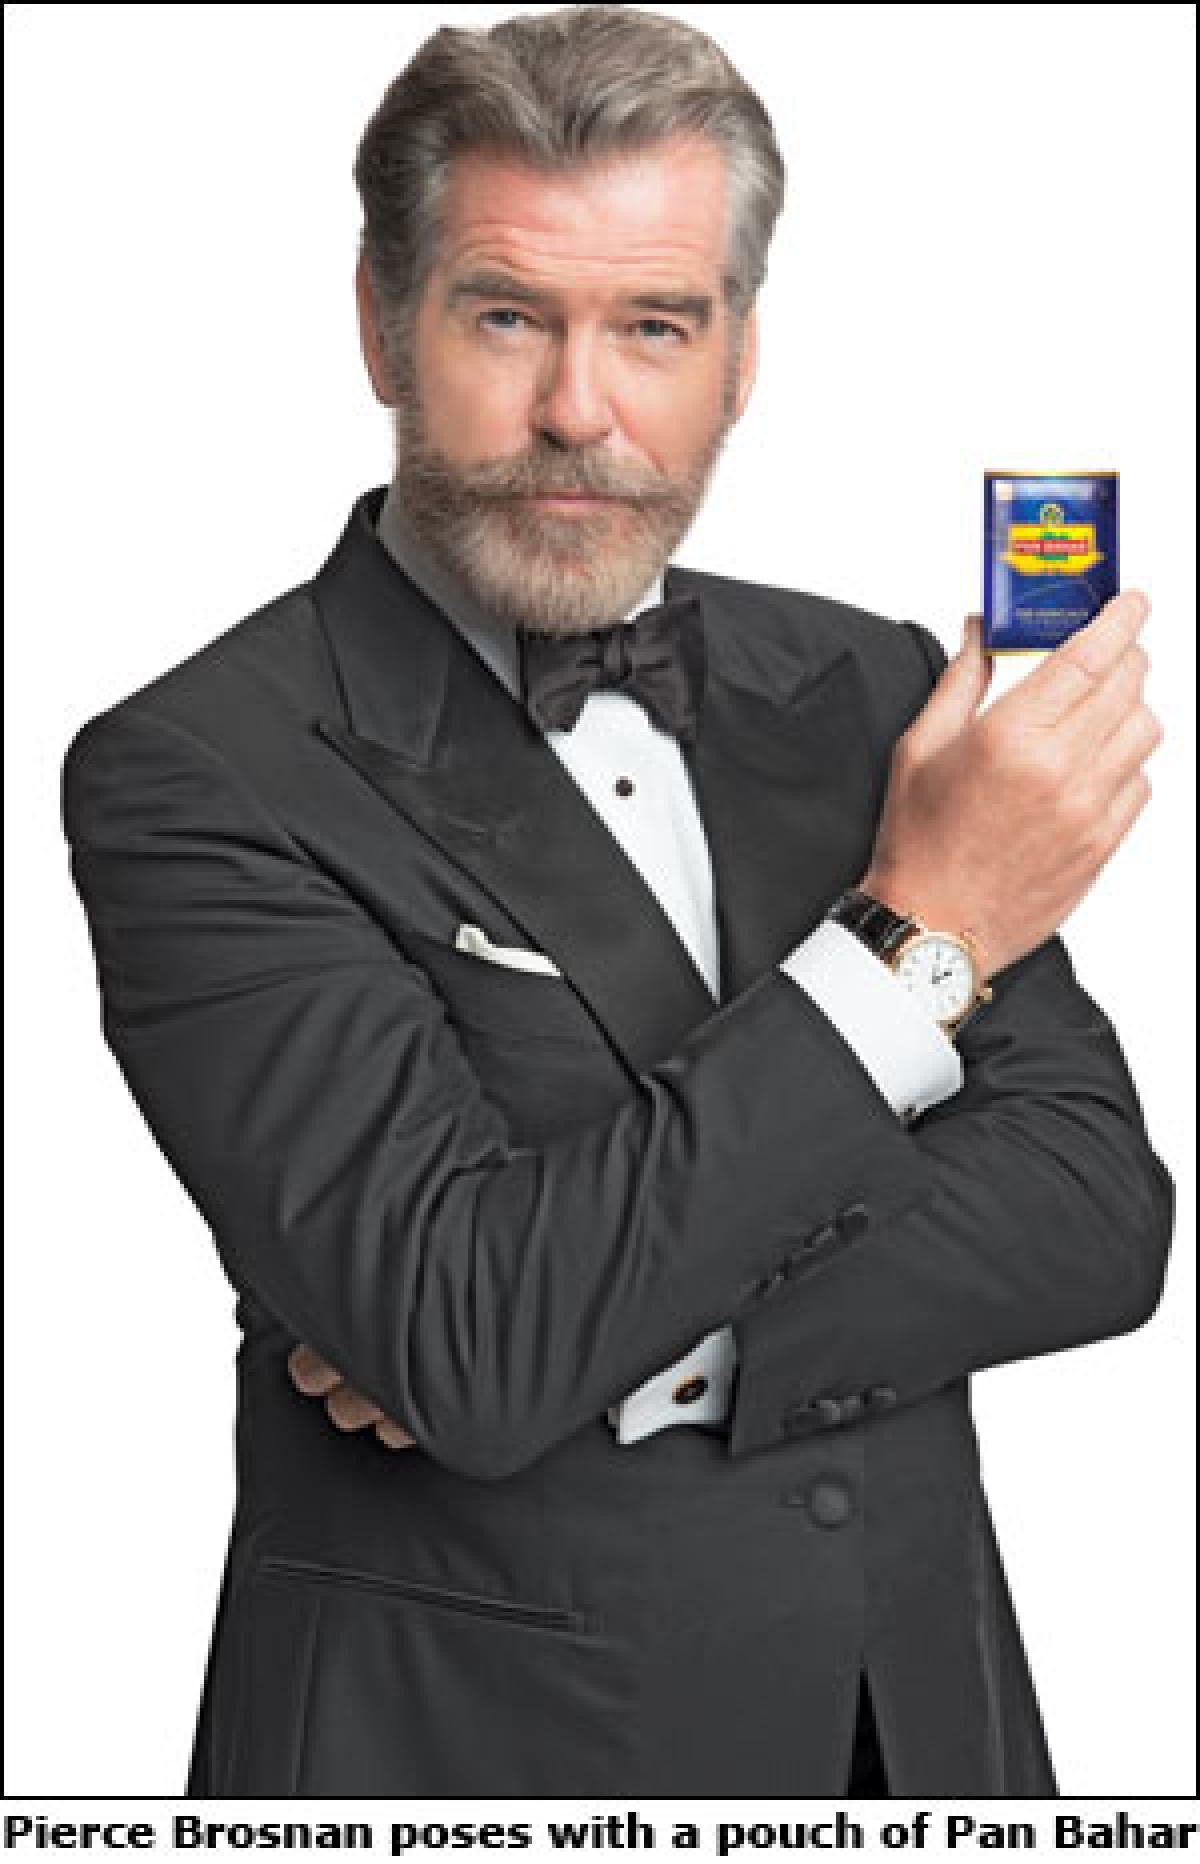 """""""Pan masala category suffers from baggage of gutka players"""": Pan Bahar CEO on why Pierce Brosnan ads got trolled"""